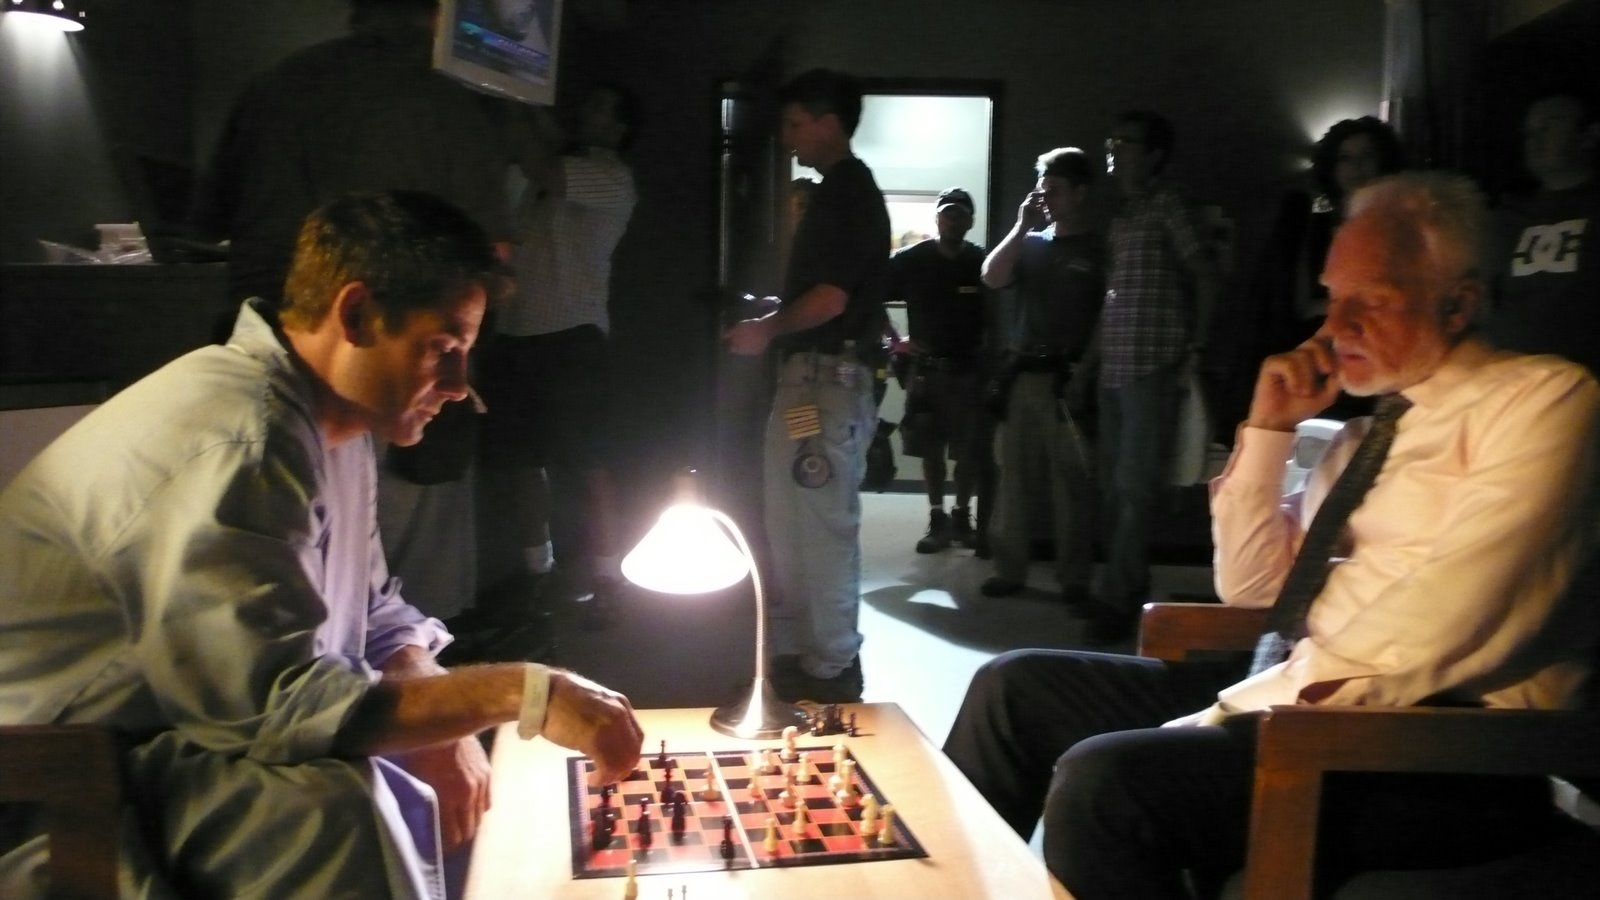 [ep+2+adrian+and+malcom+play+a+game+of+chess+while+the+crew+works]